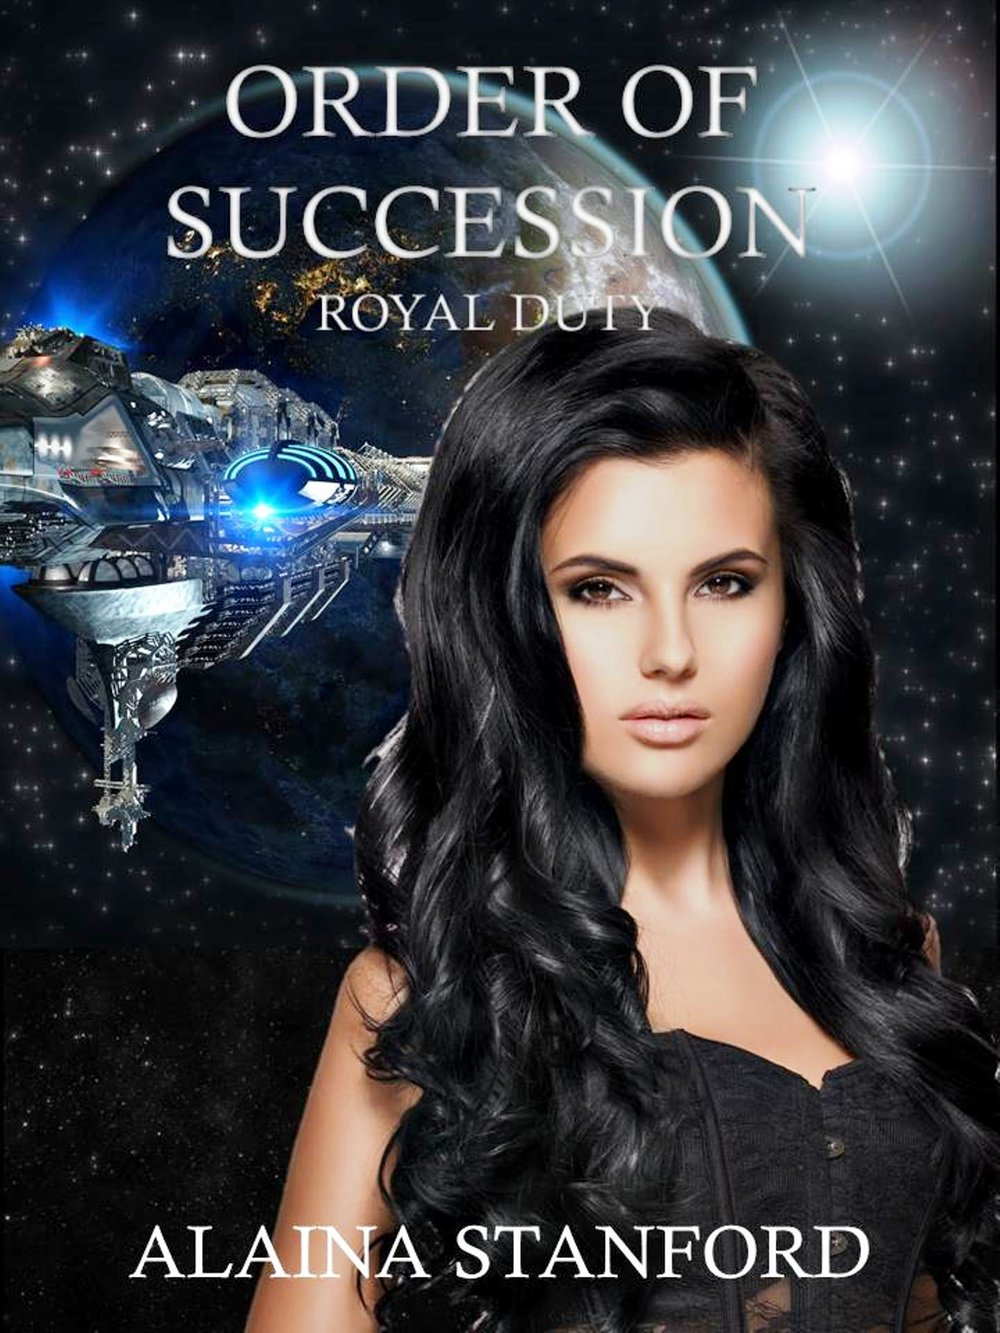 ORDER OF SUCCESSION COVER 5.jpg